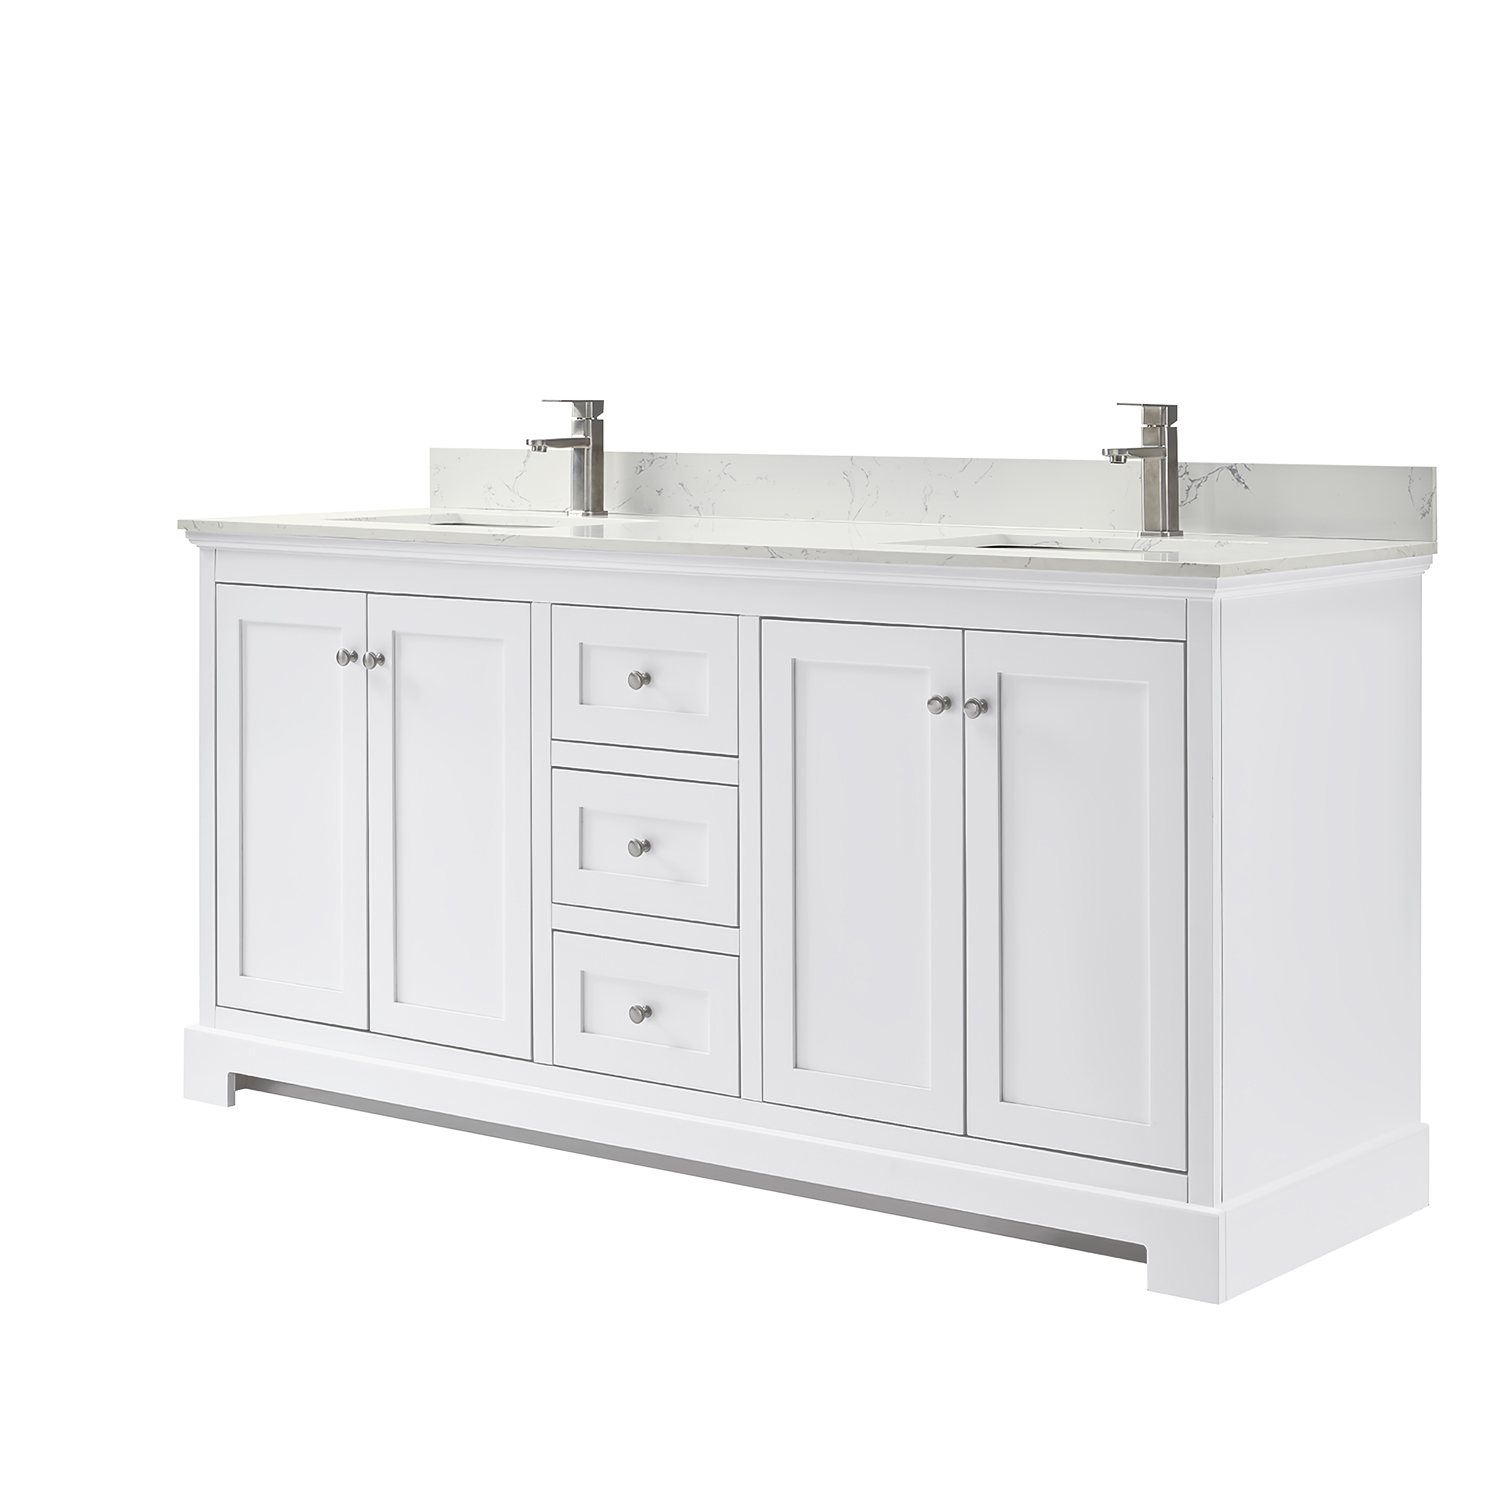 ryla 72 double bathroom vanity in white carrara cultured marble countertop undermount square sinks and no mirror